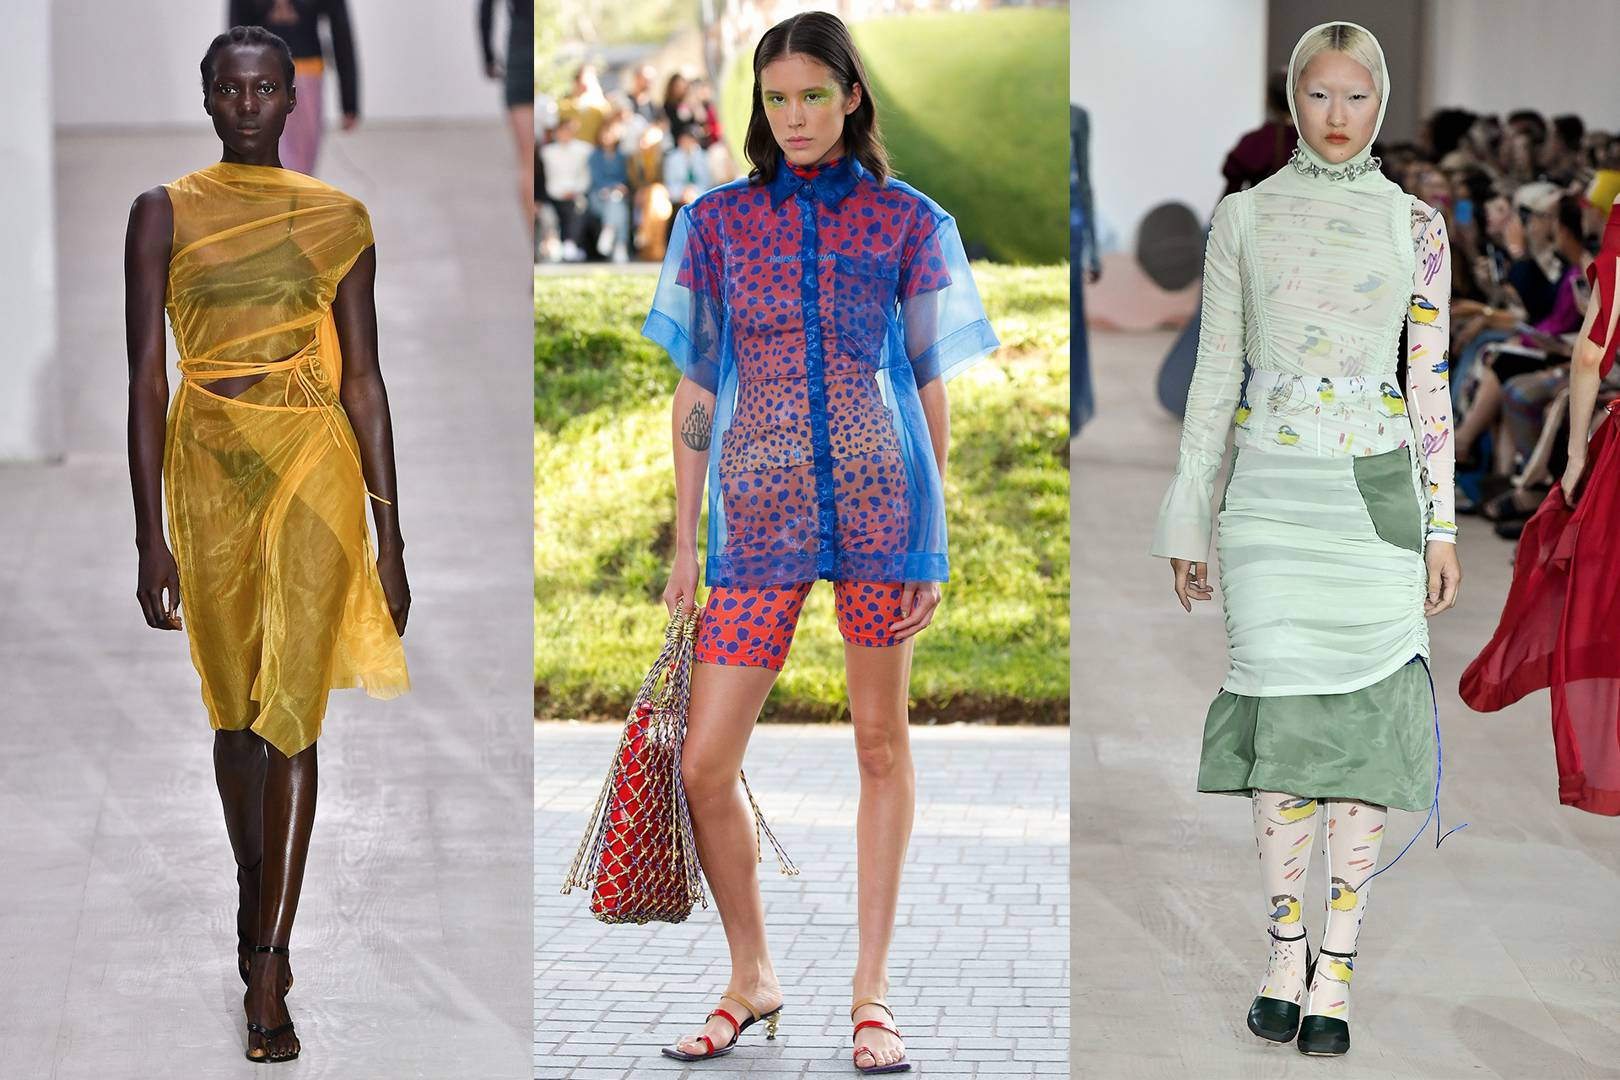 Spring Summer 7 Fashion Trends: Looks & How To Wear Them